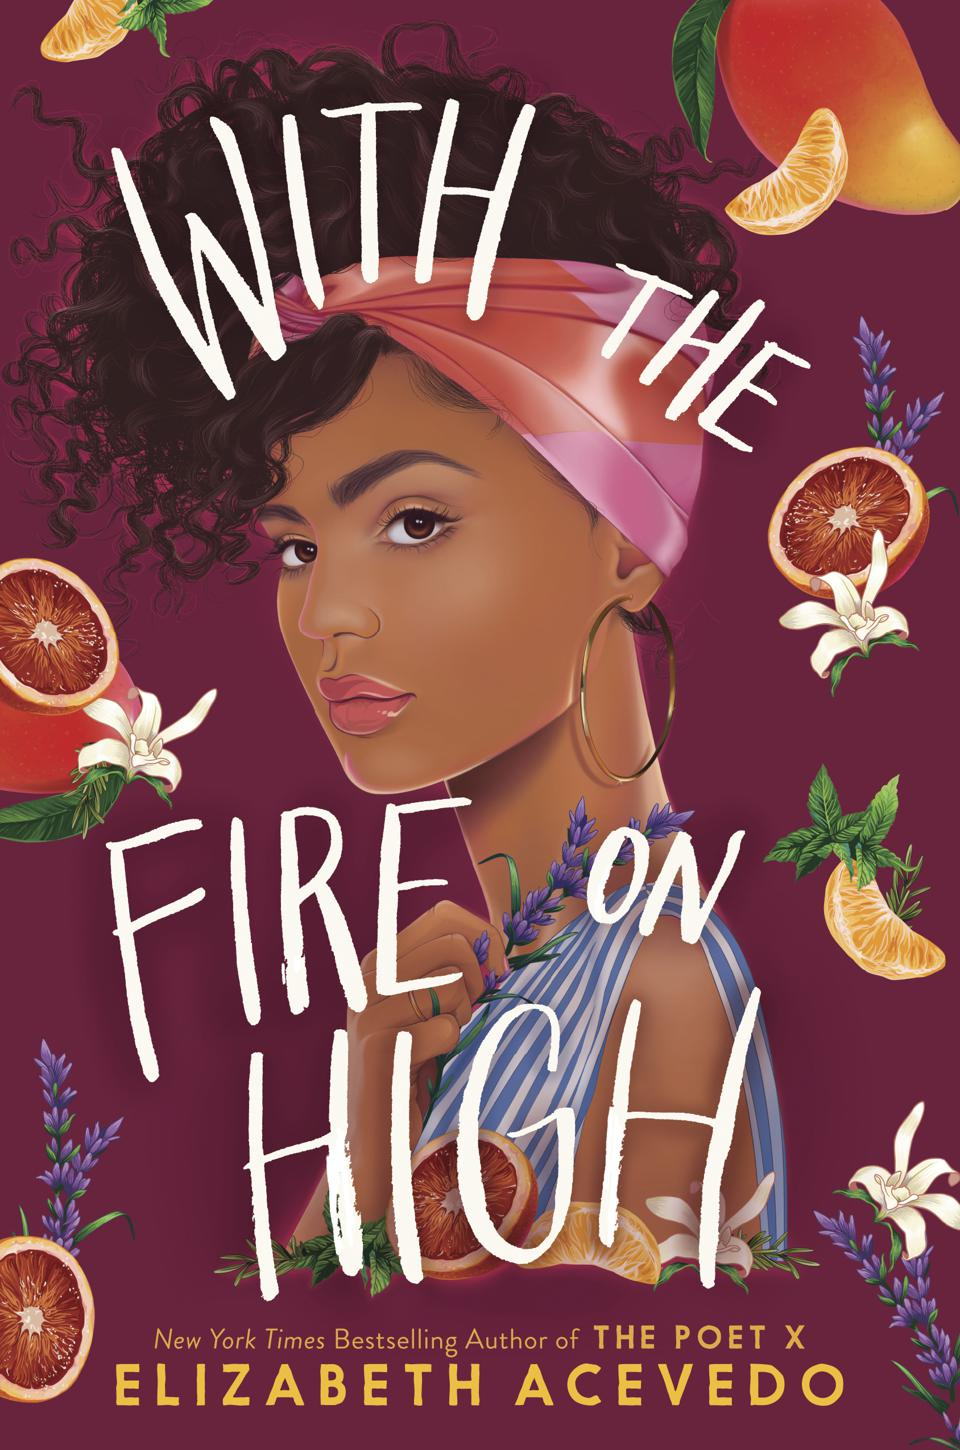 with the fire on high elizabeth acevedo young adult novel